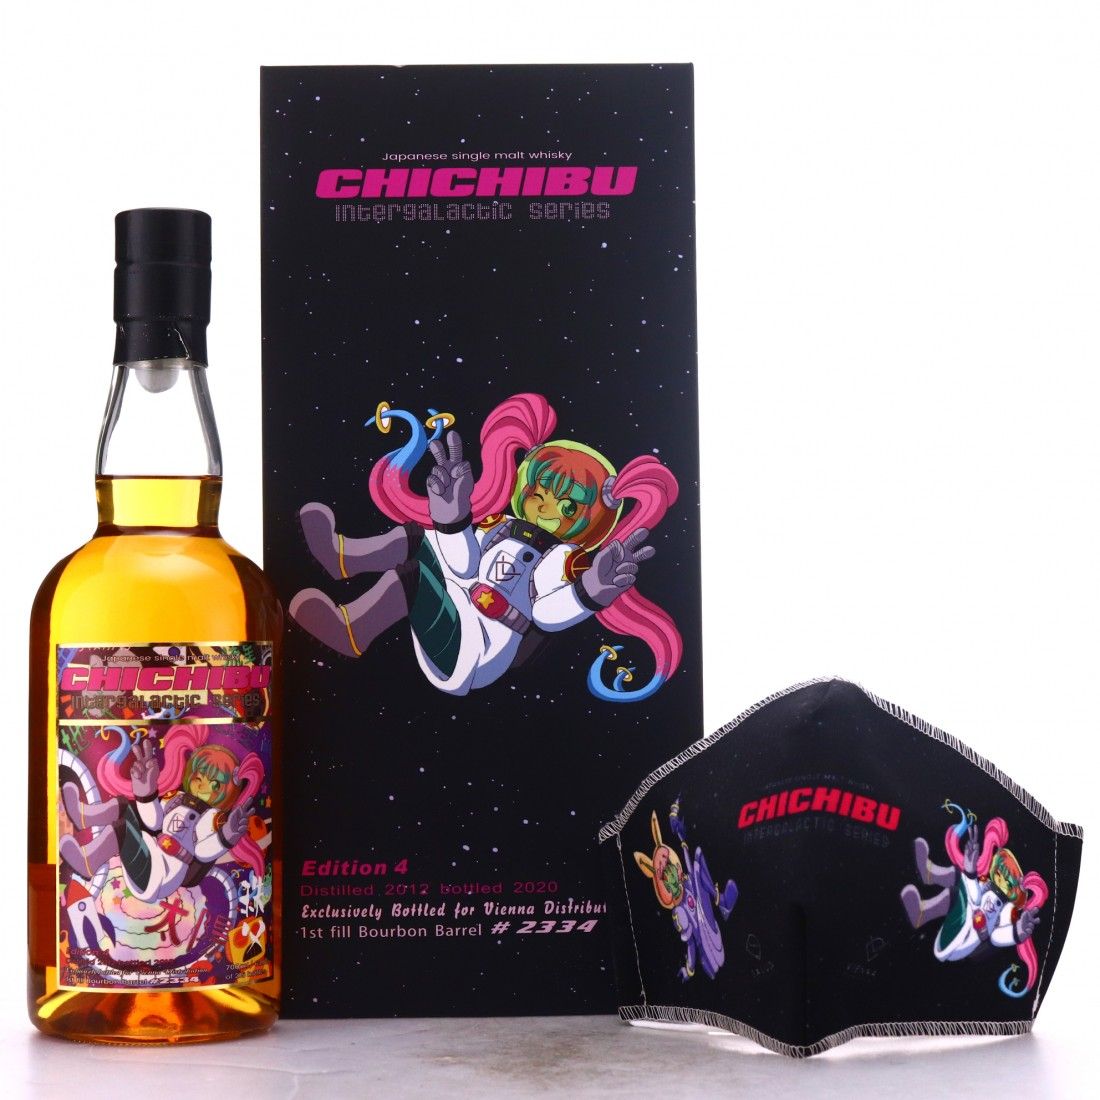 Chichibu 2012 Single Bourbon Cask #2334 / Intergalactic Edition 4